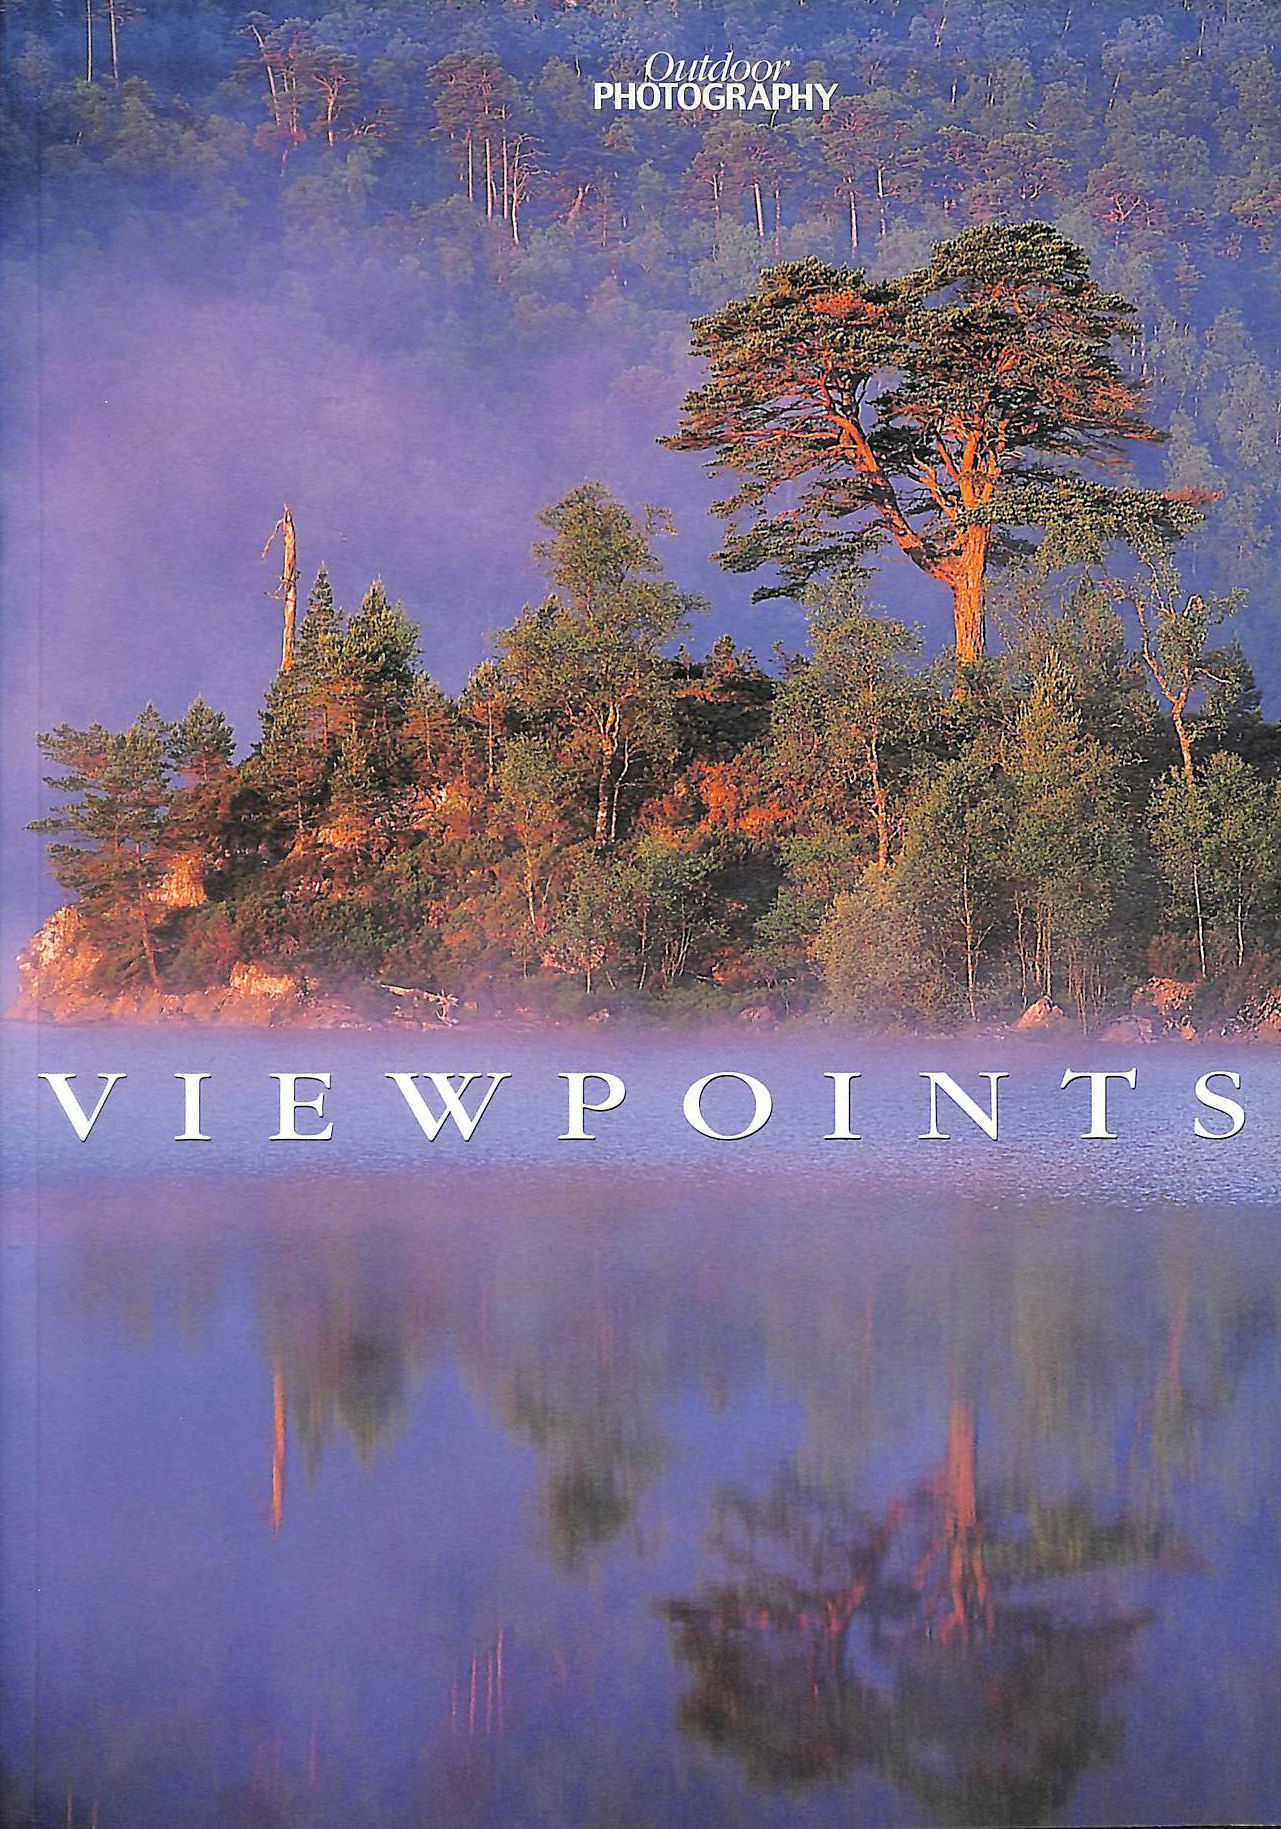 Image for Viewpoints from Outdoor Photography